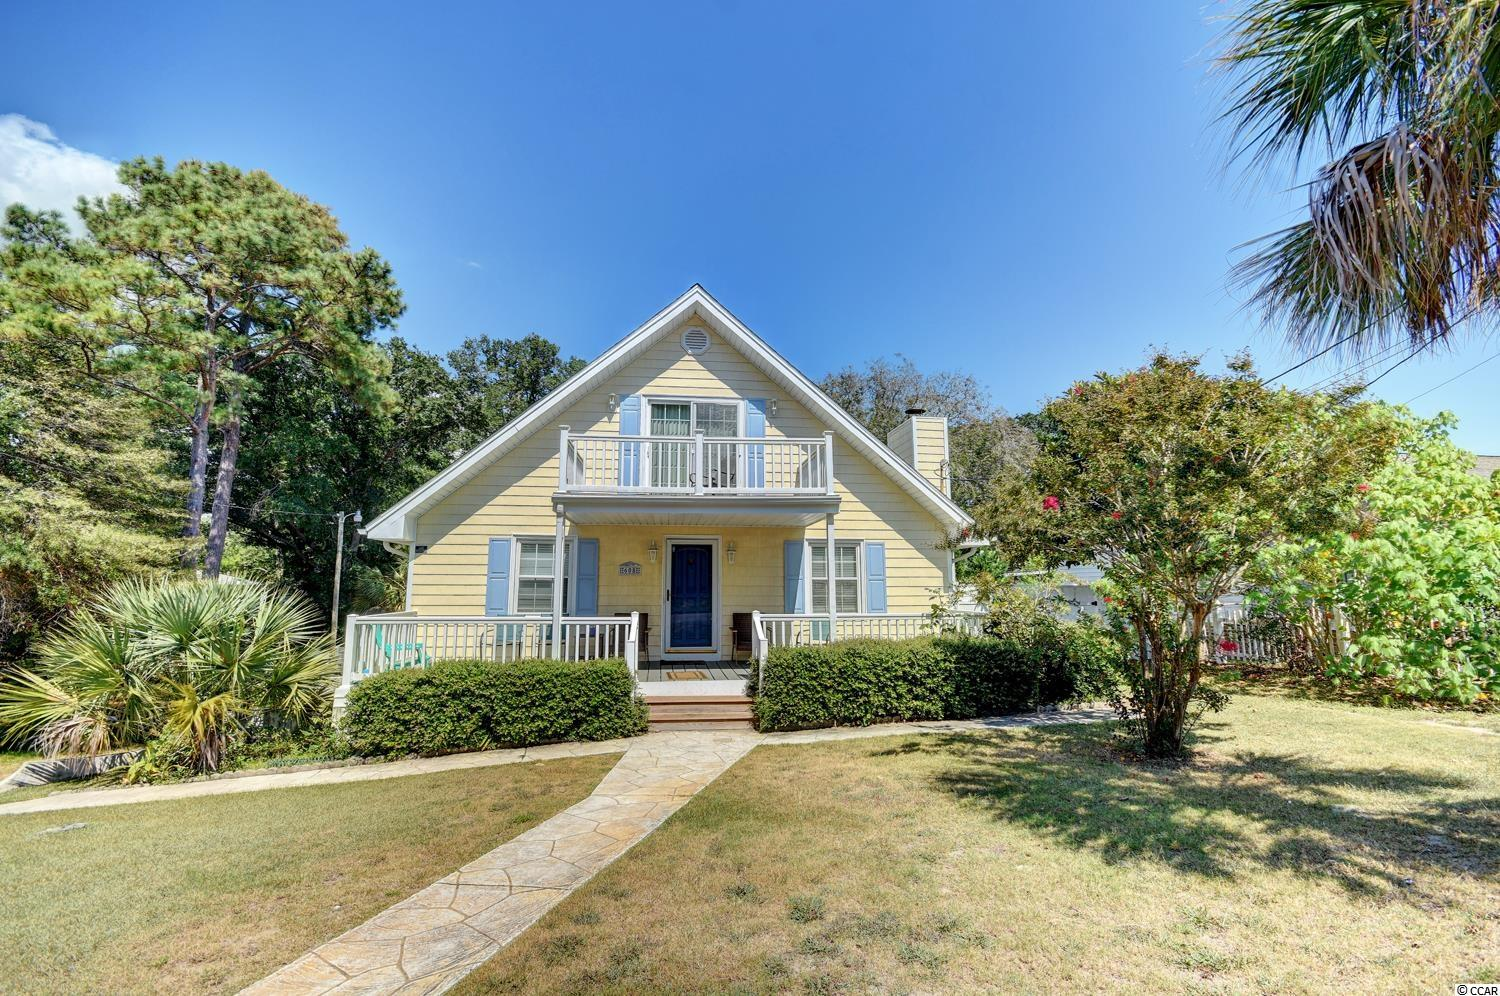 608 43rd Ave. S North Myrtle Beach, SC 29582